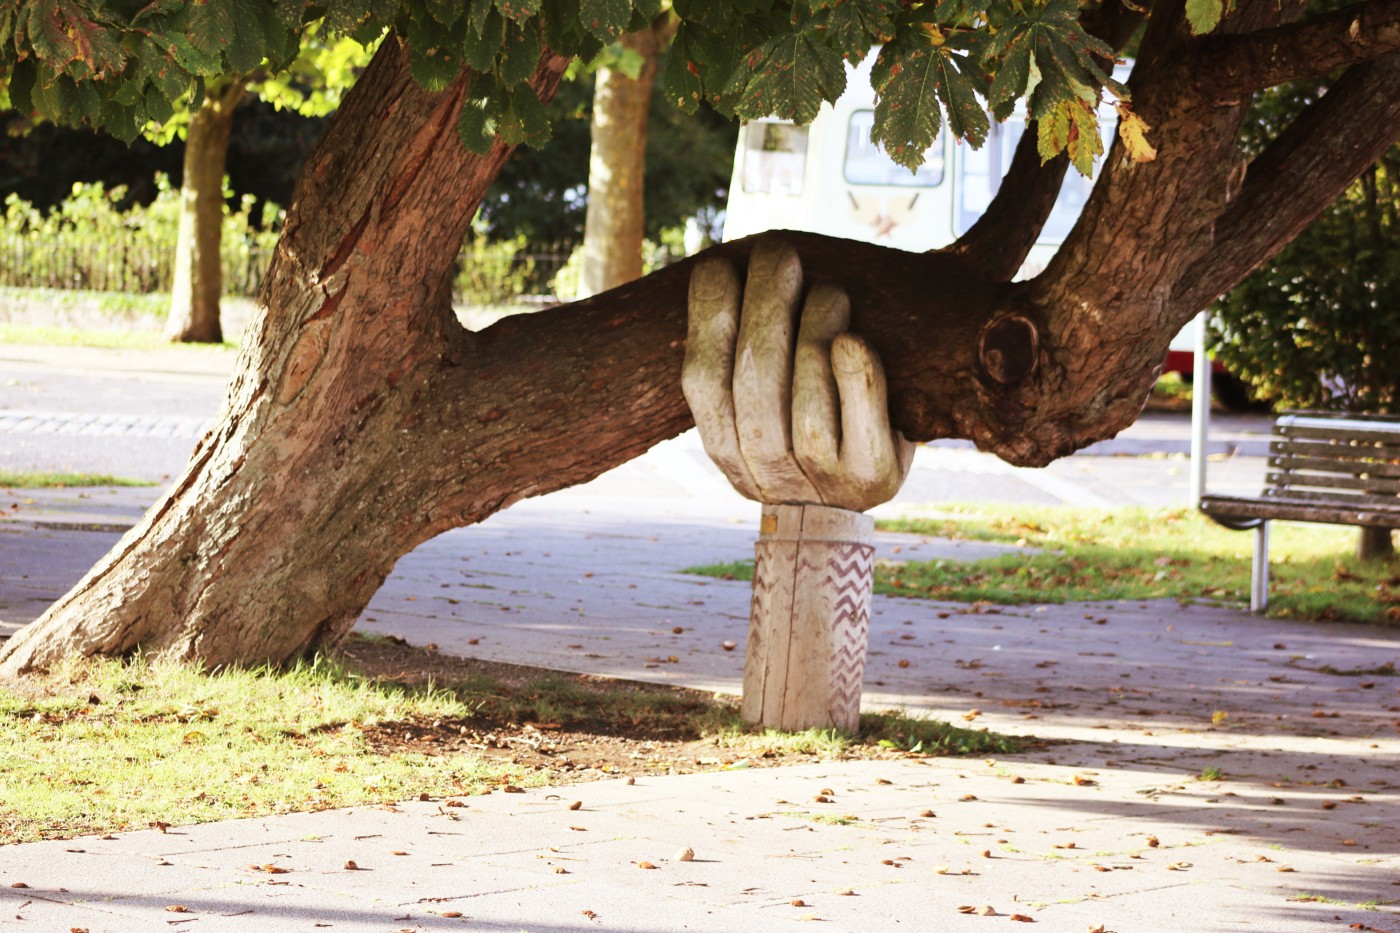 Tree supported by a large sculpted hand